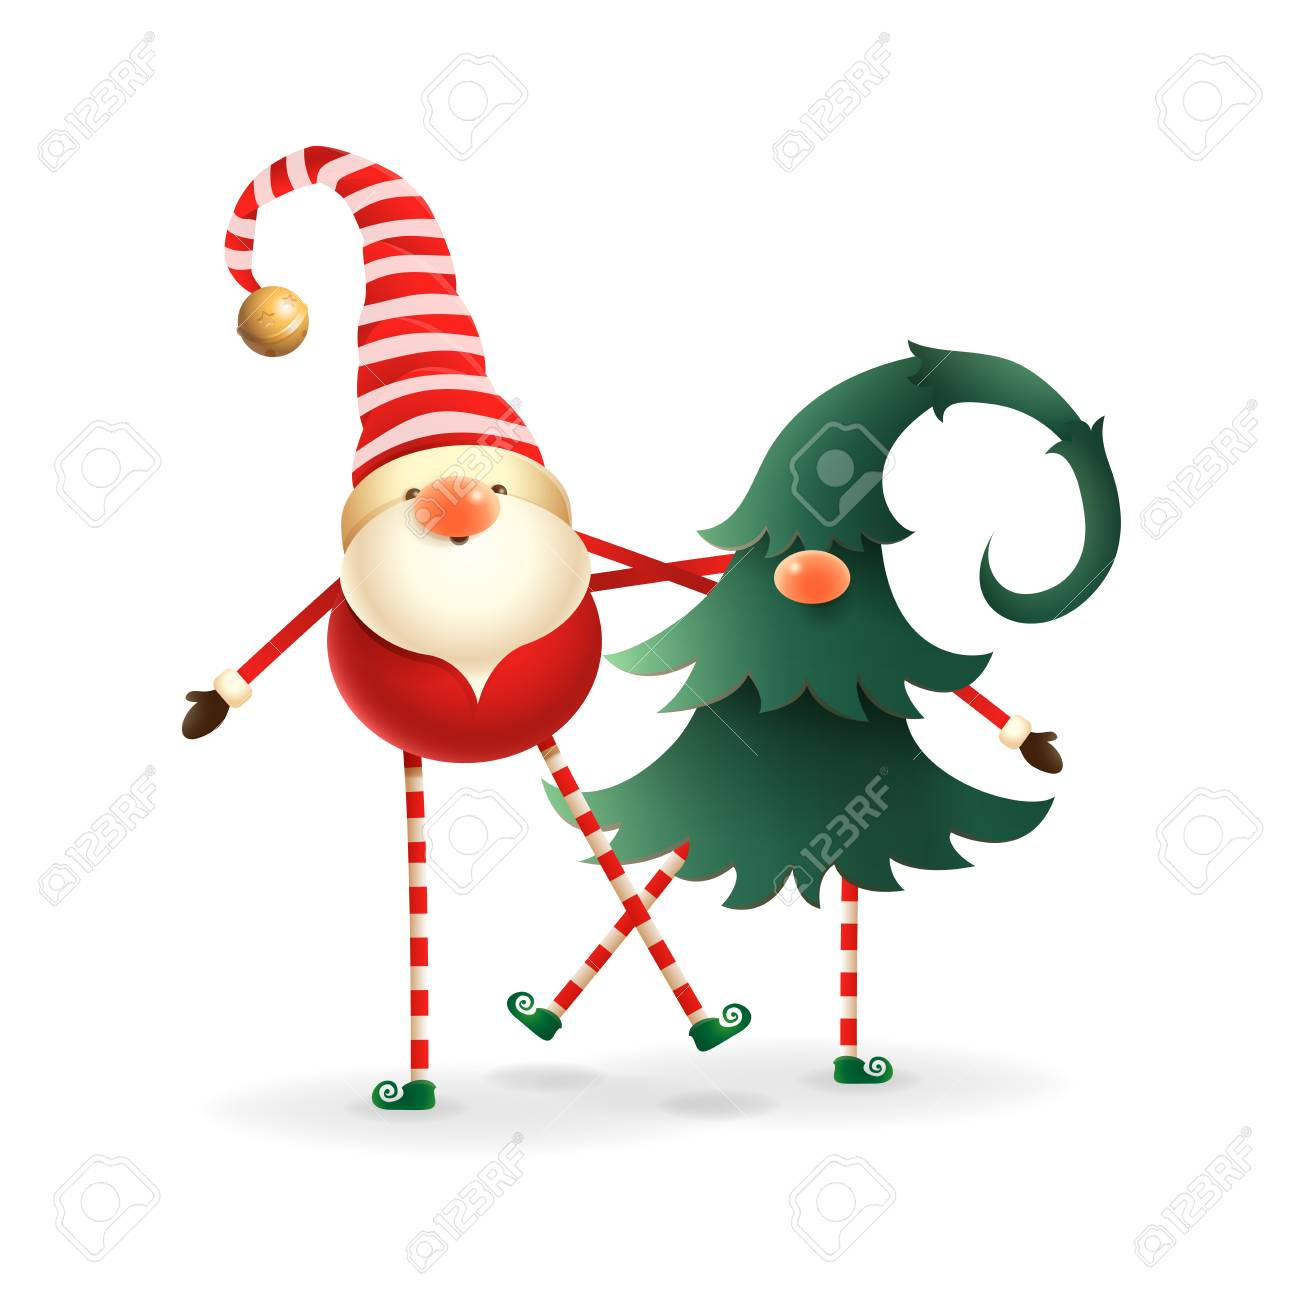 Christmas Gnomes.Christmas Gnomes Cute Happy Two Friends One Hidden In Christmas